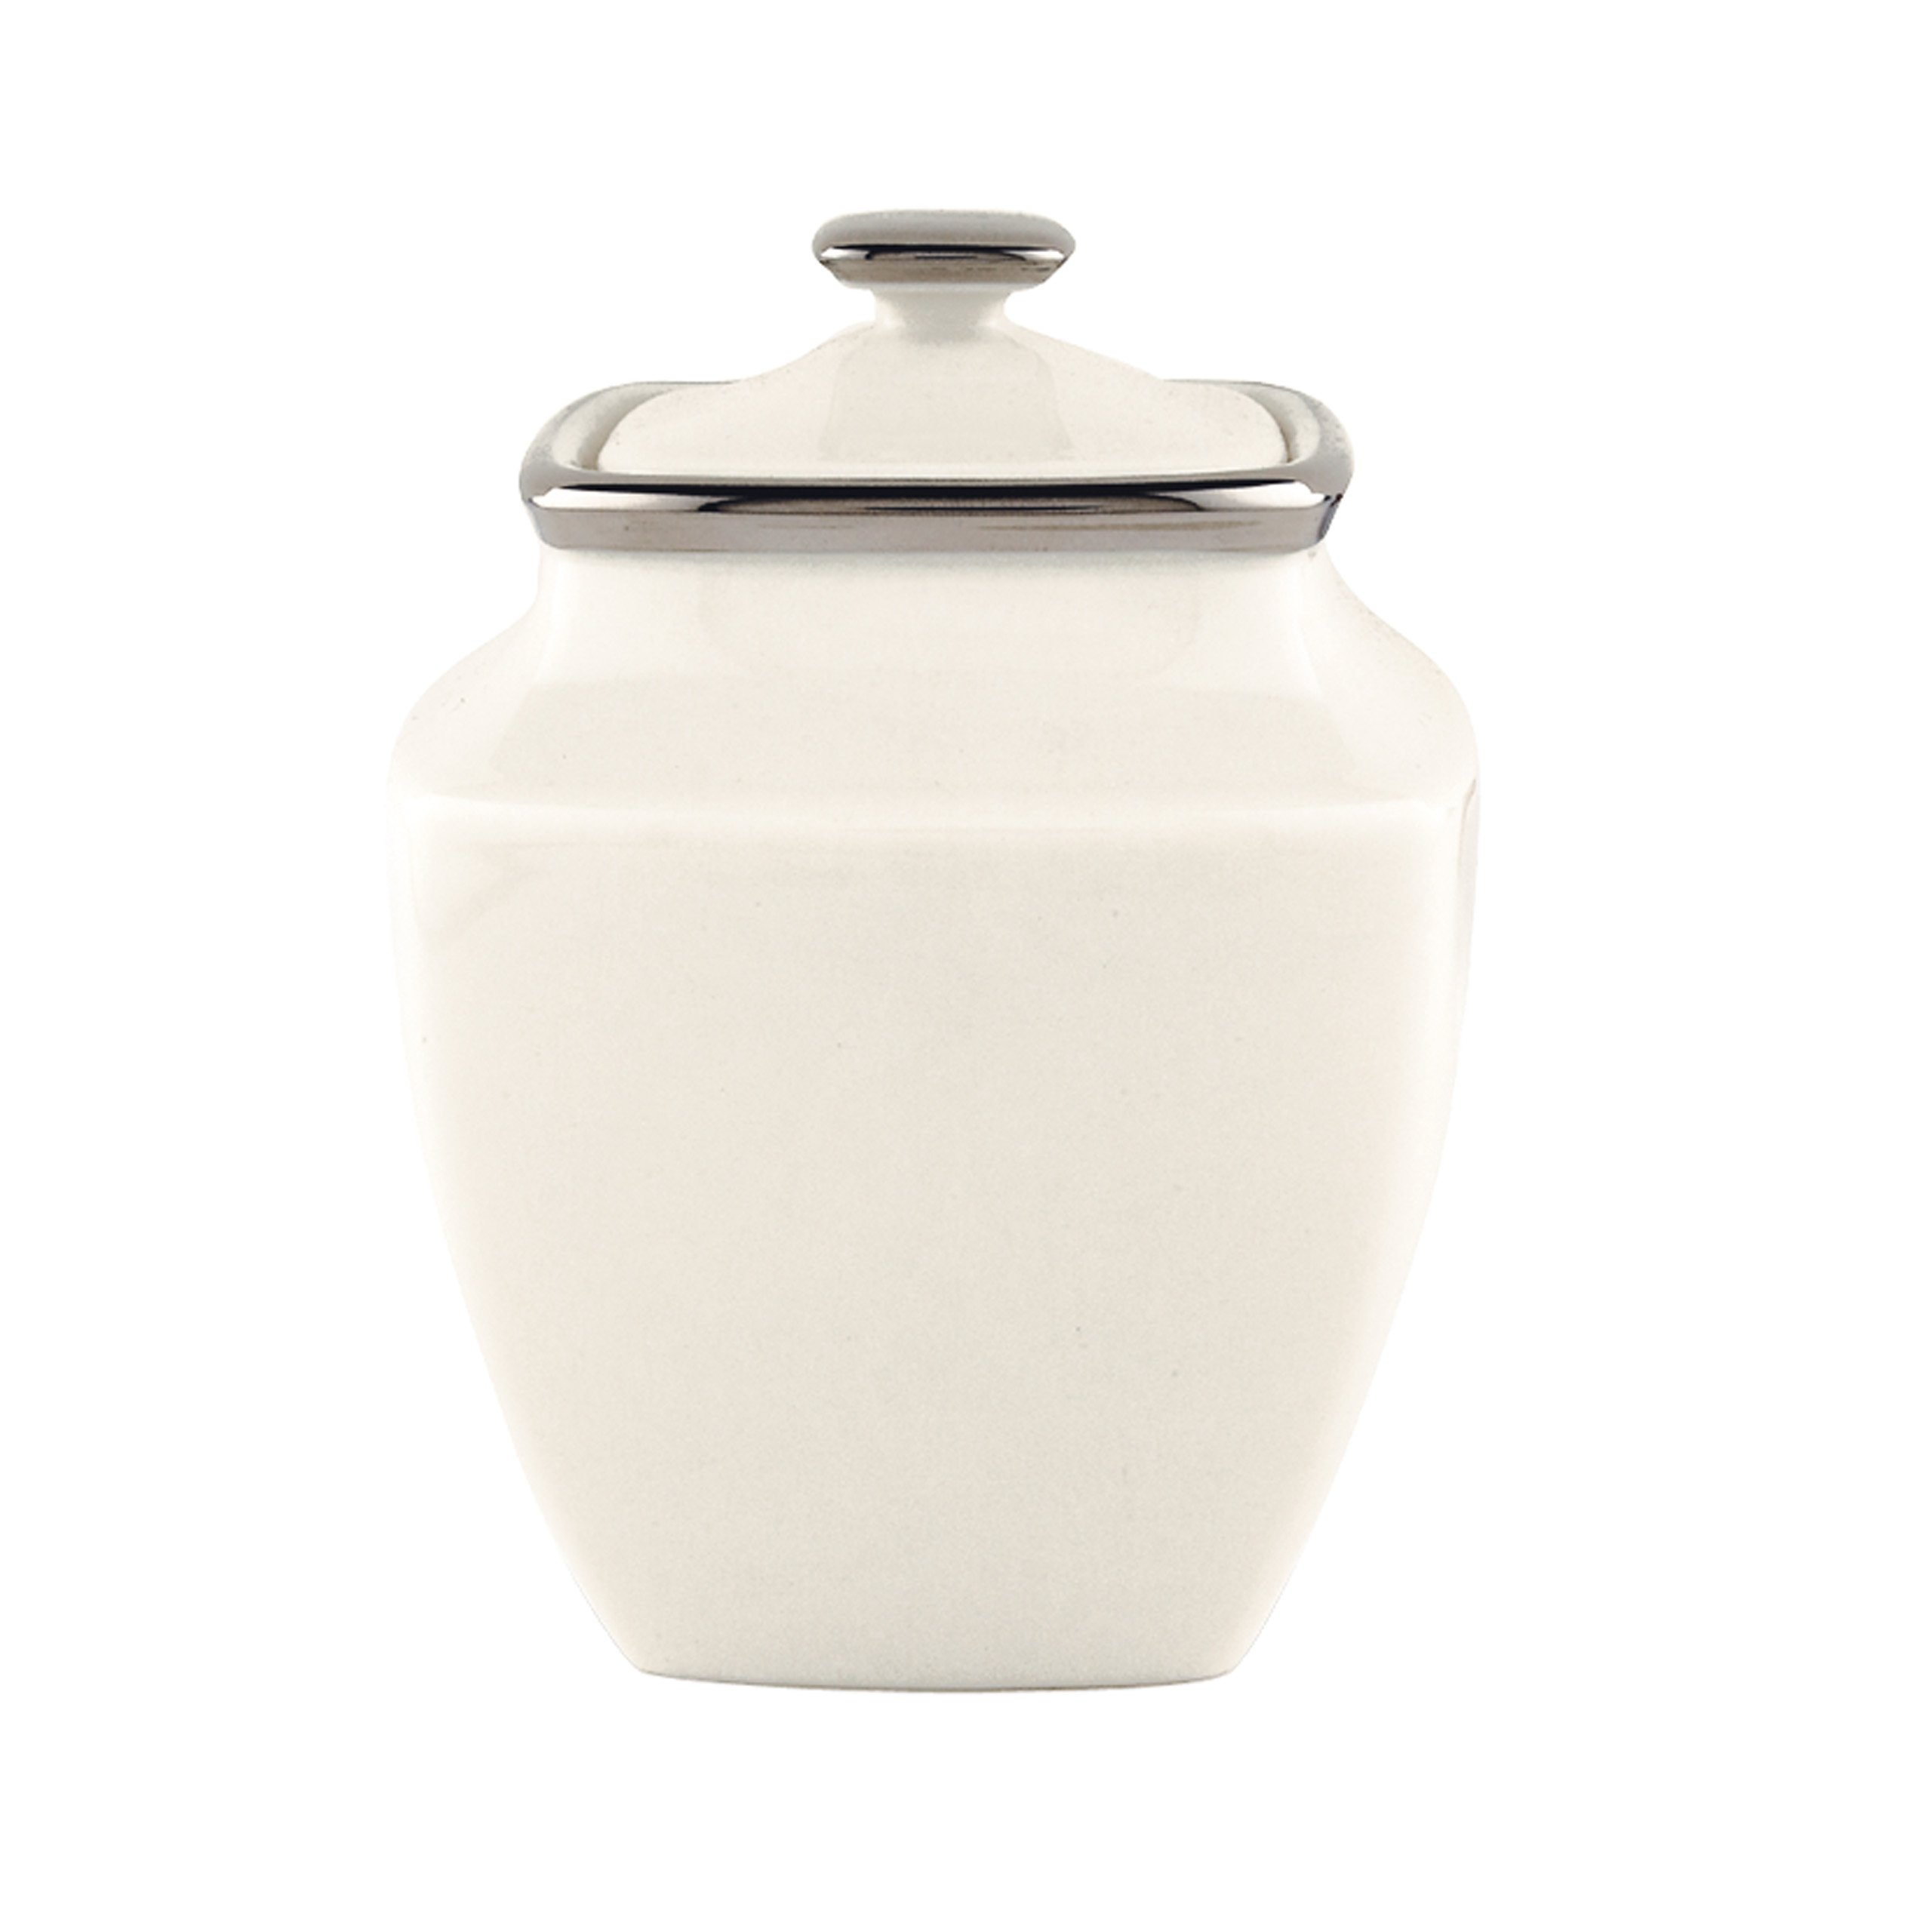 Lenox Solitaire Square Sugar Bowl, Ivory and Platinum